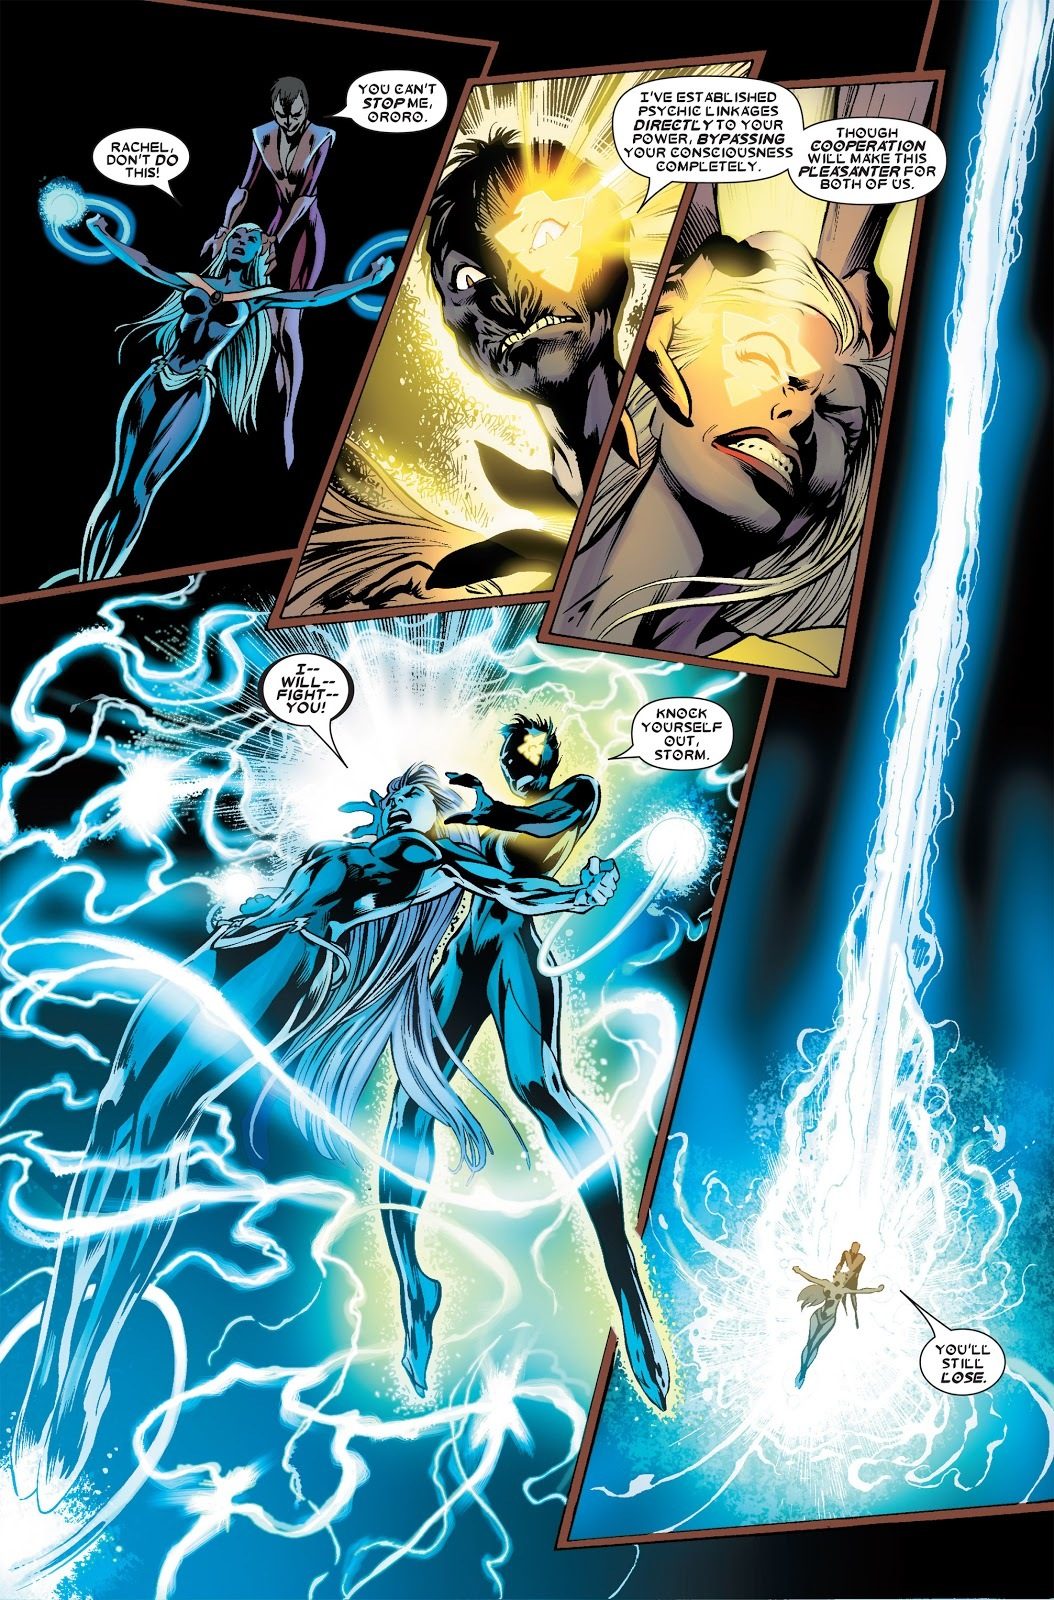 Bypasses Storm's consciousness and takes over her powers.